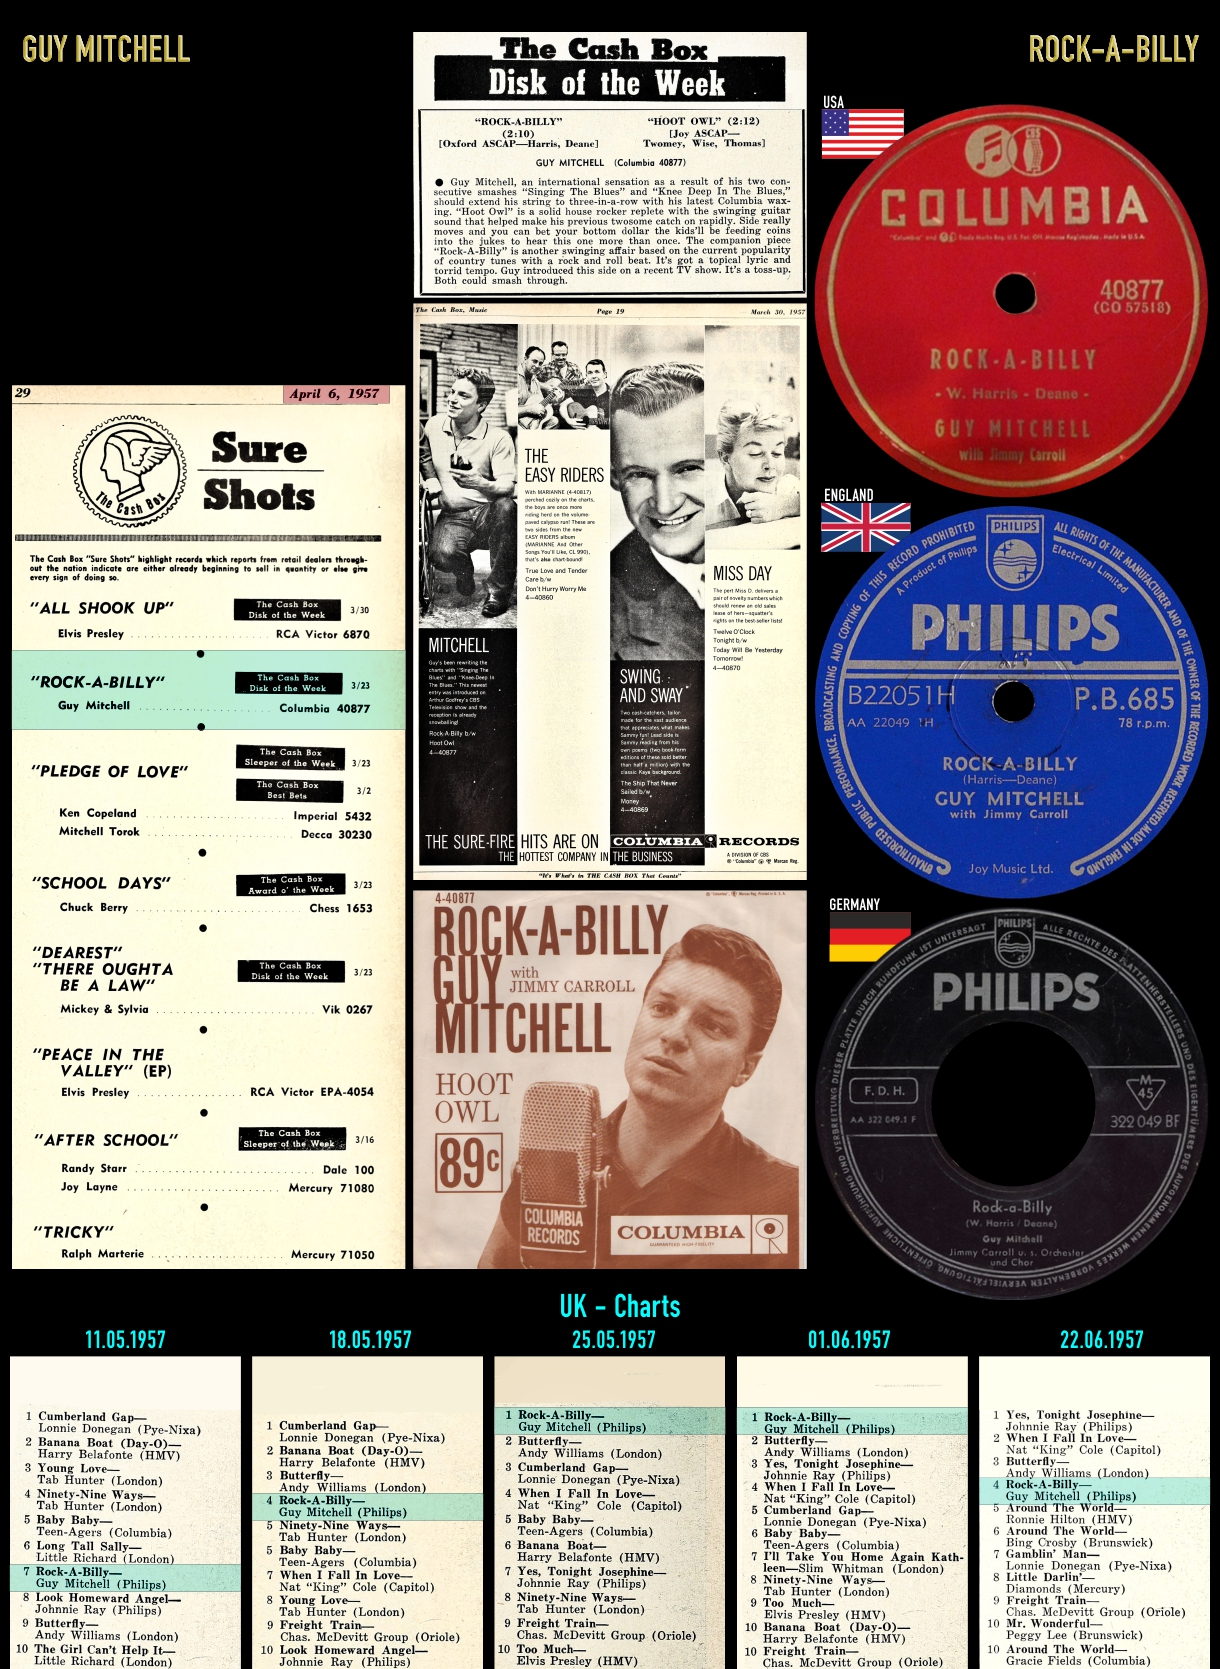 570406_Guy Mitchell_Rock-A-Billy